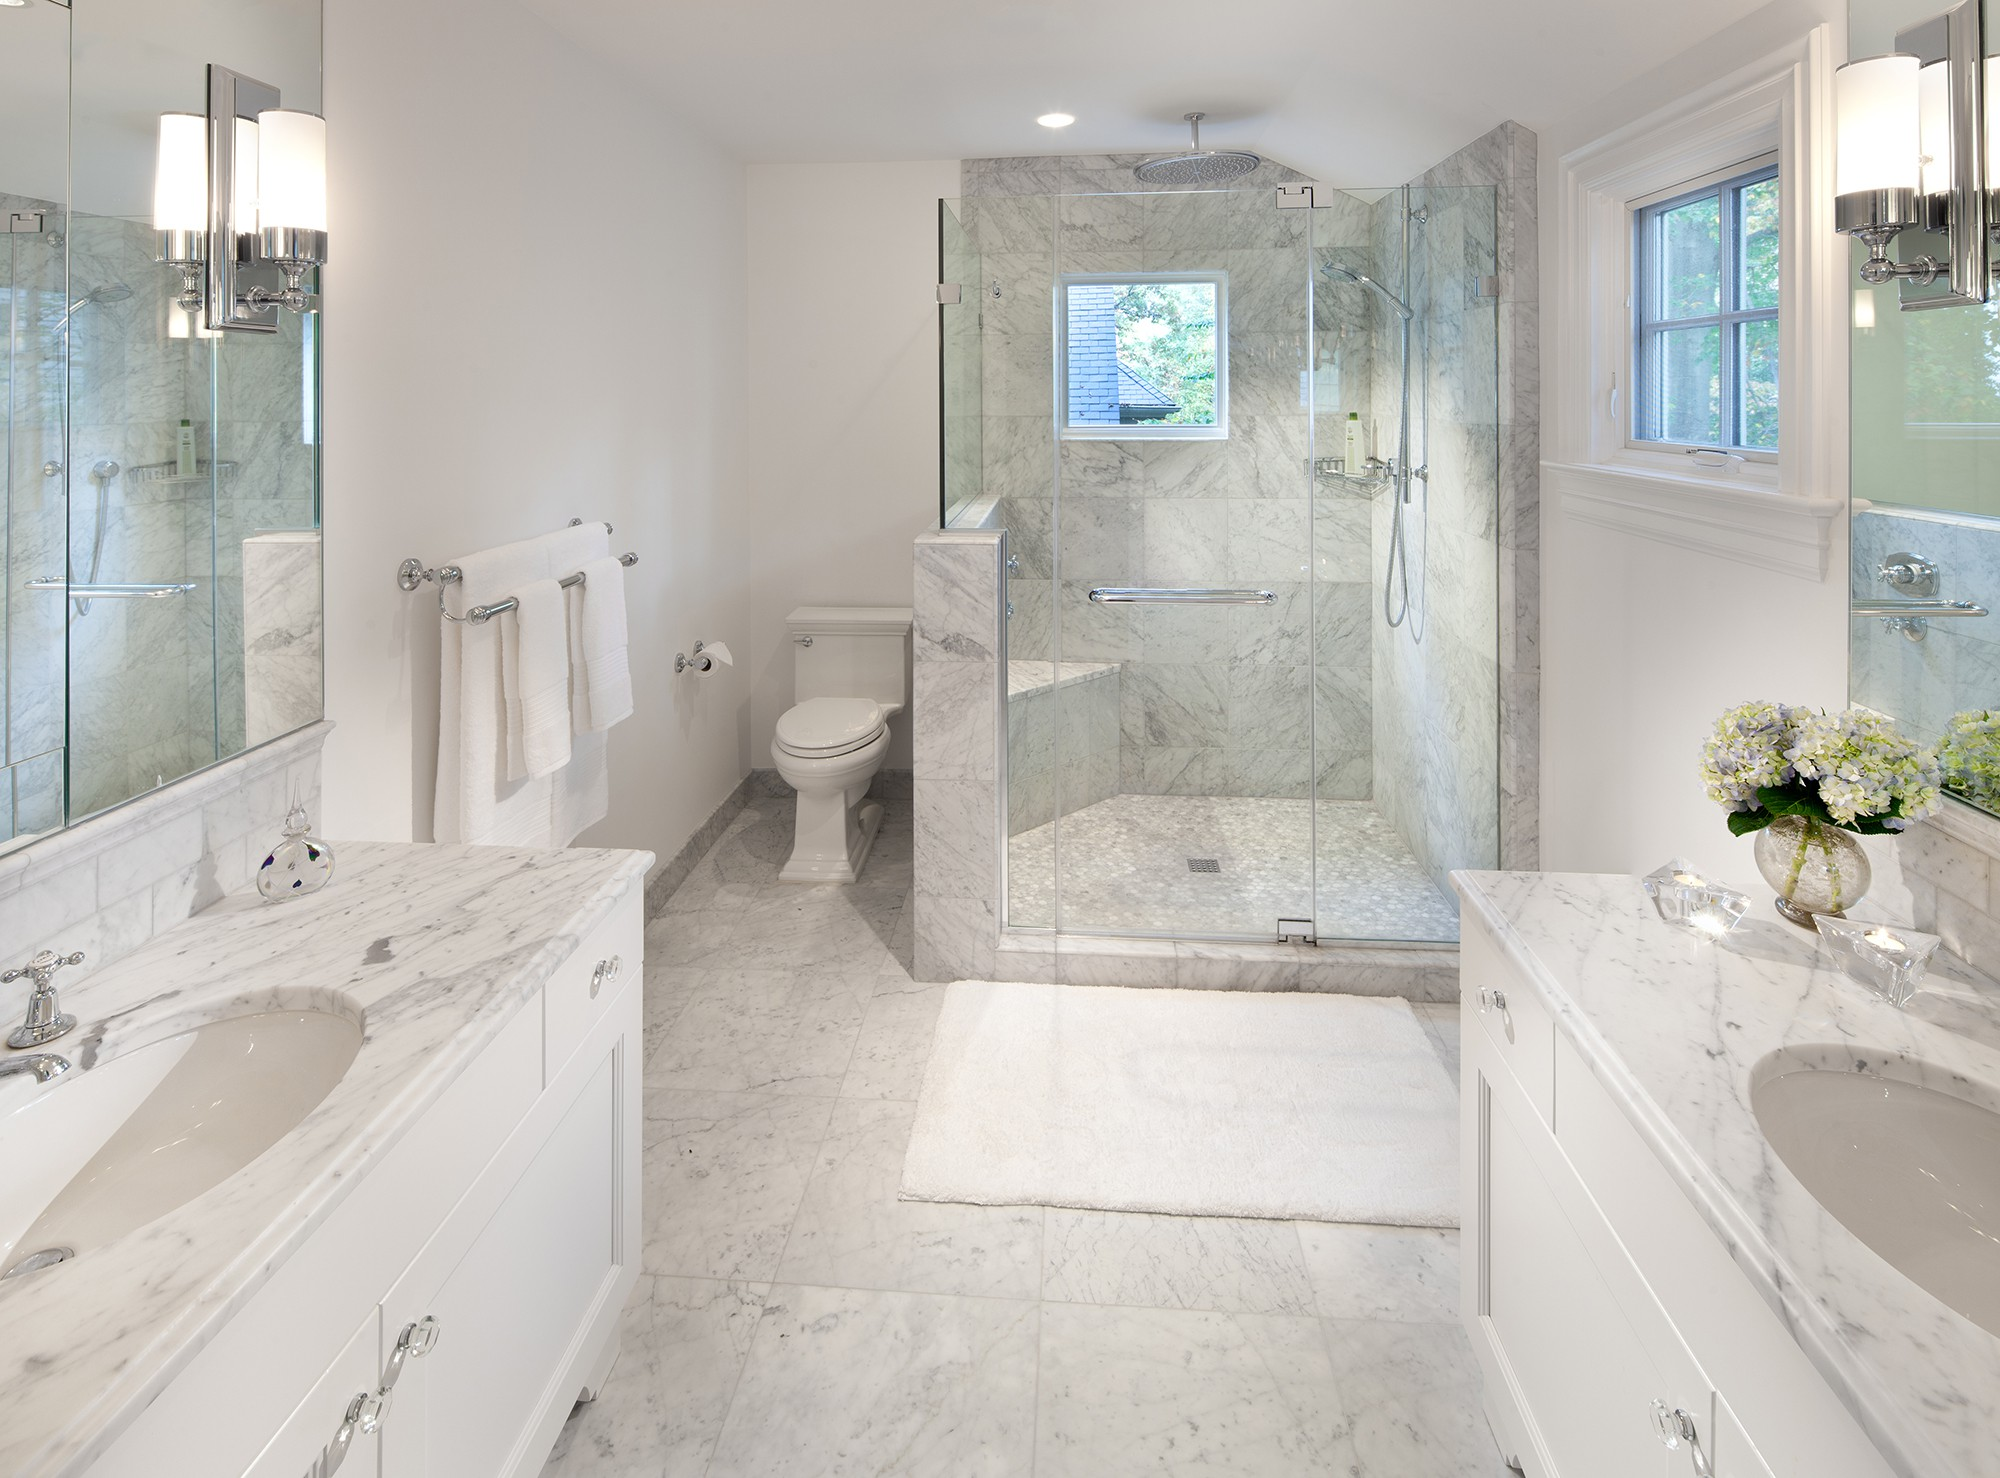 Chevy Chase, MD Home Restoration Project